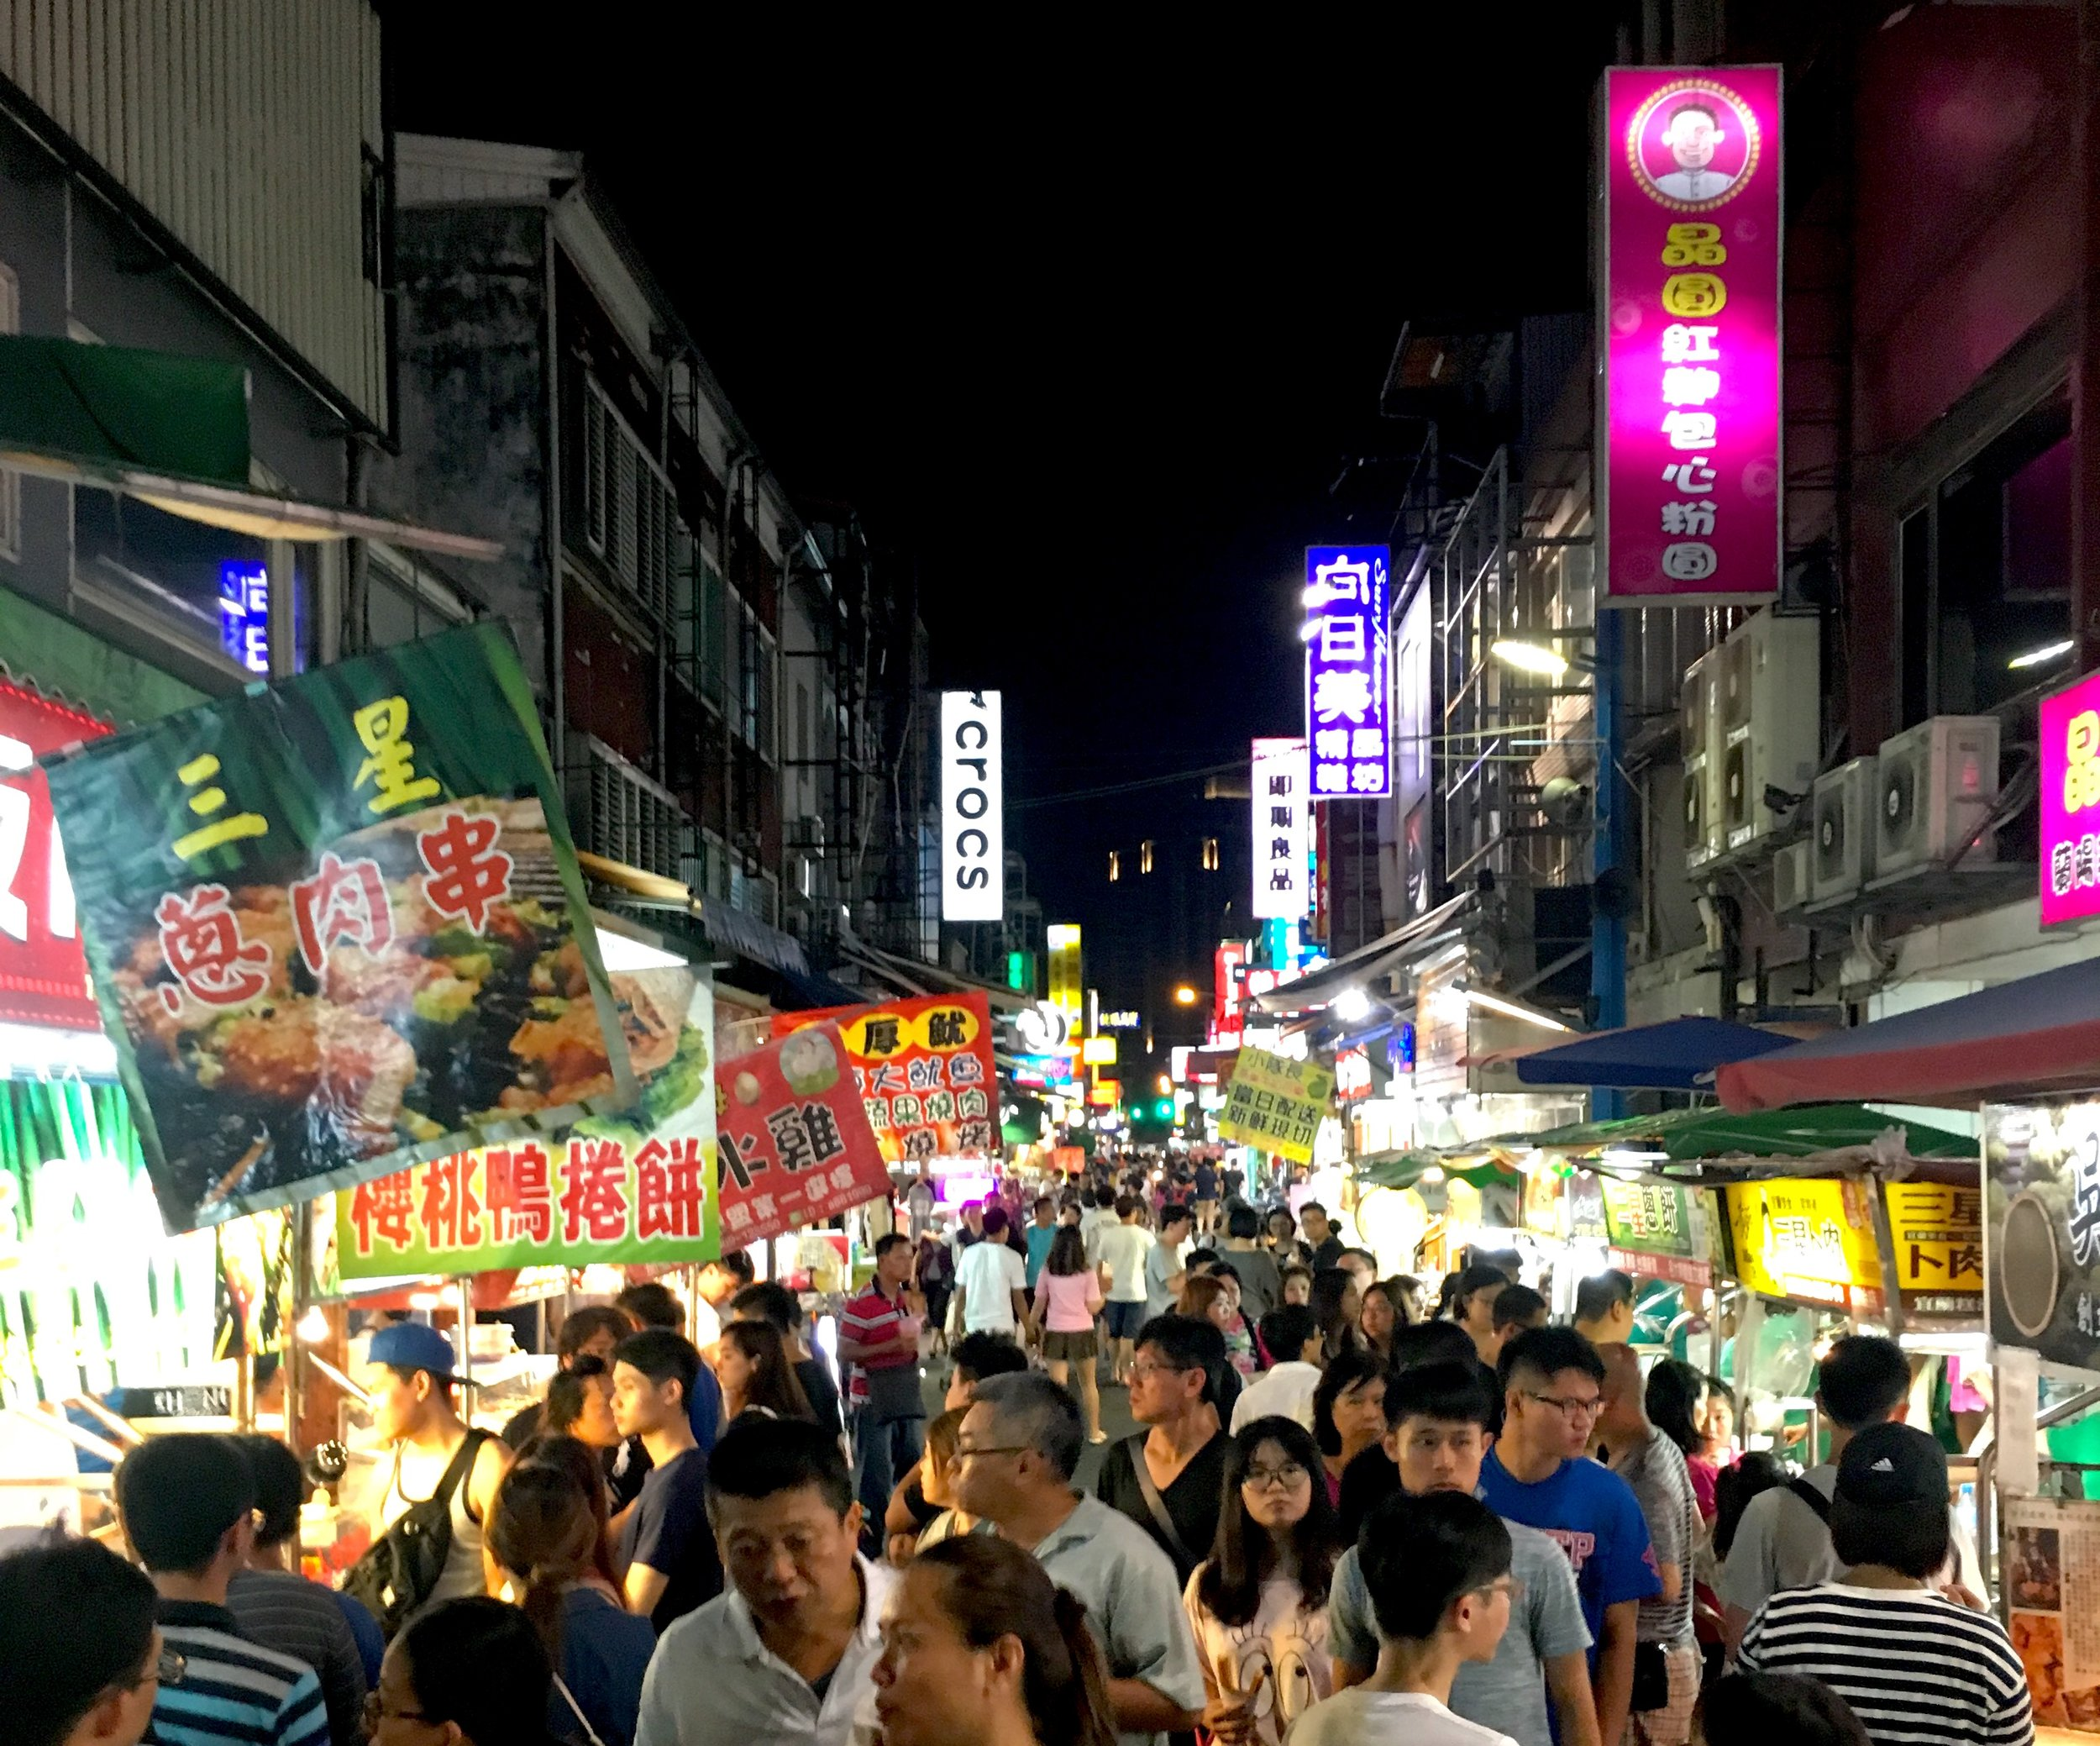 The Luodong Night Market